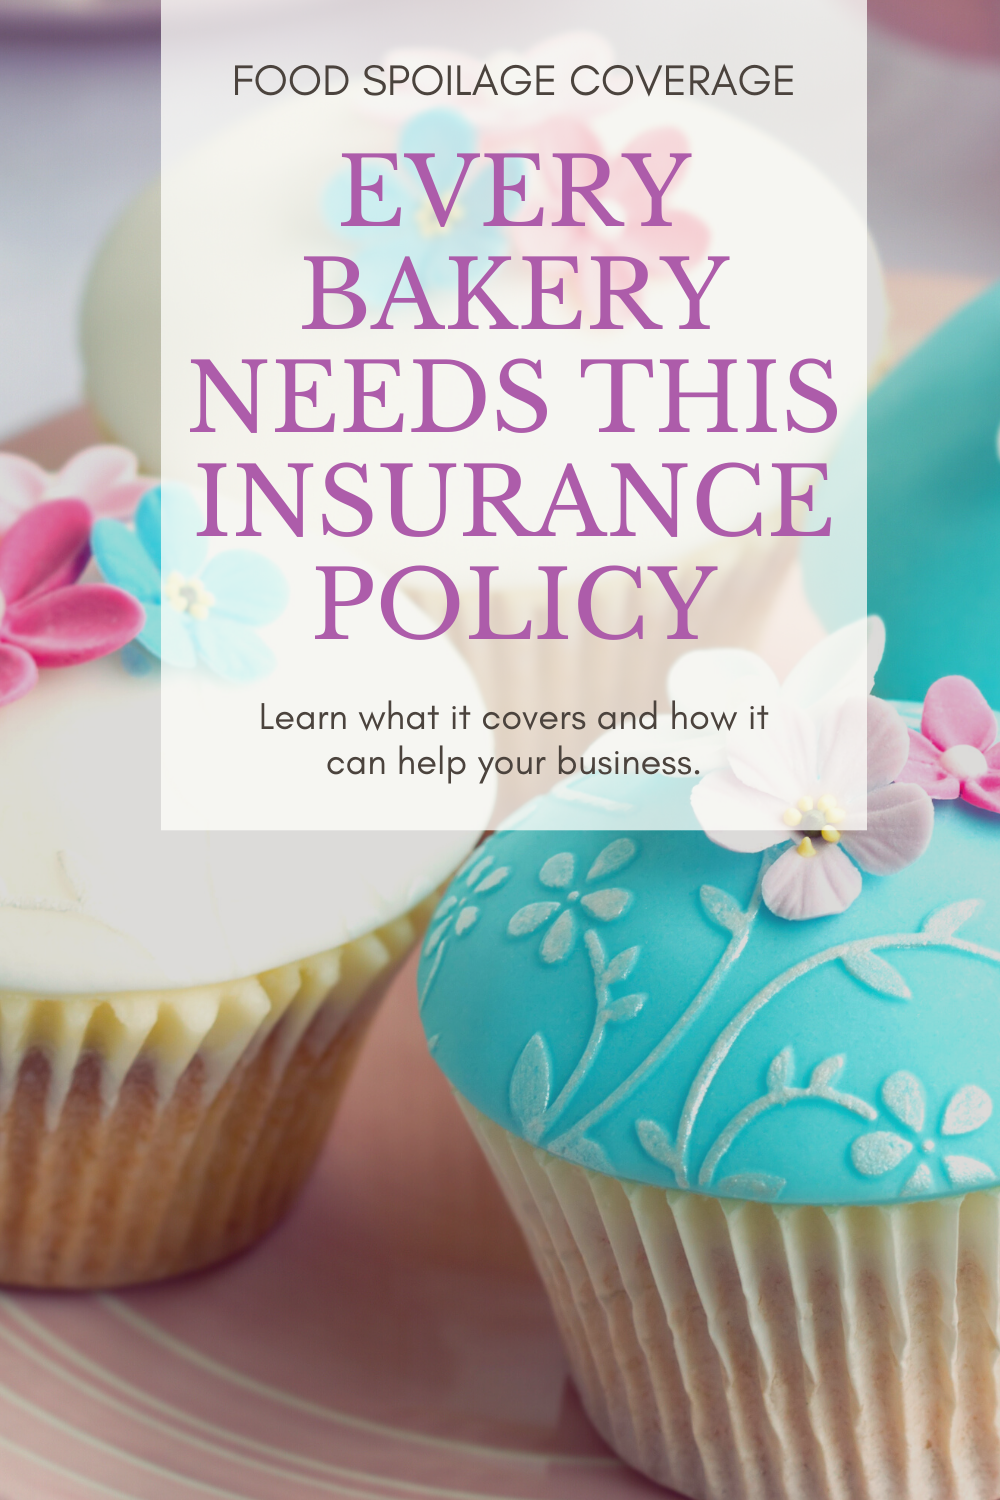 Every Bakery Needs This Insurance Policy In 2020 Bakery Business